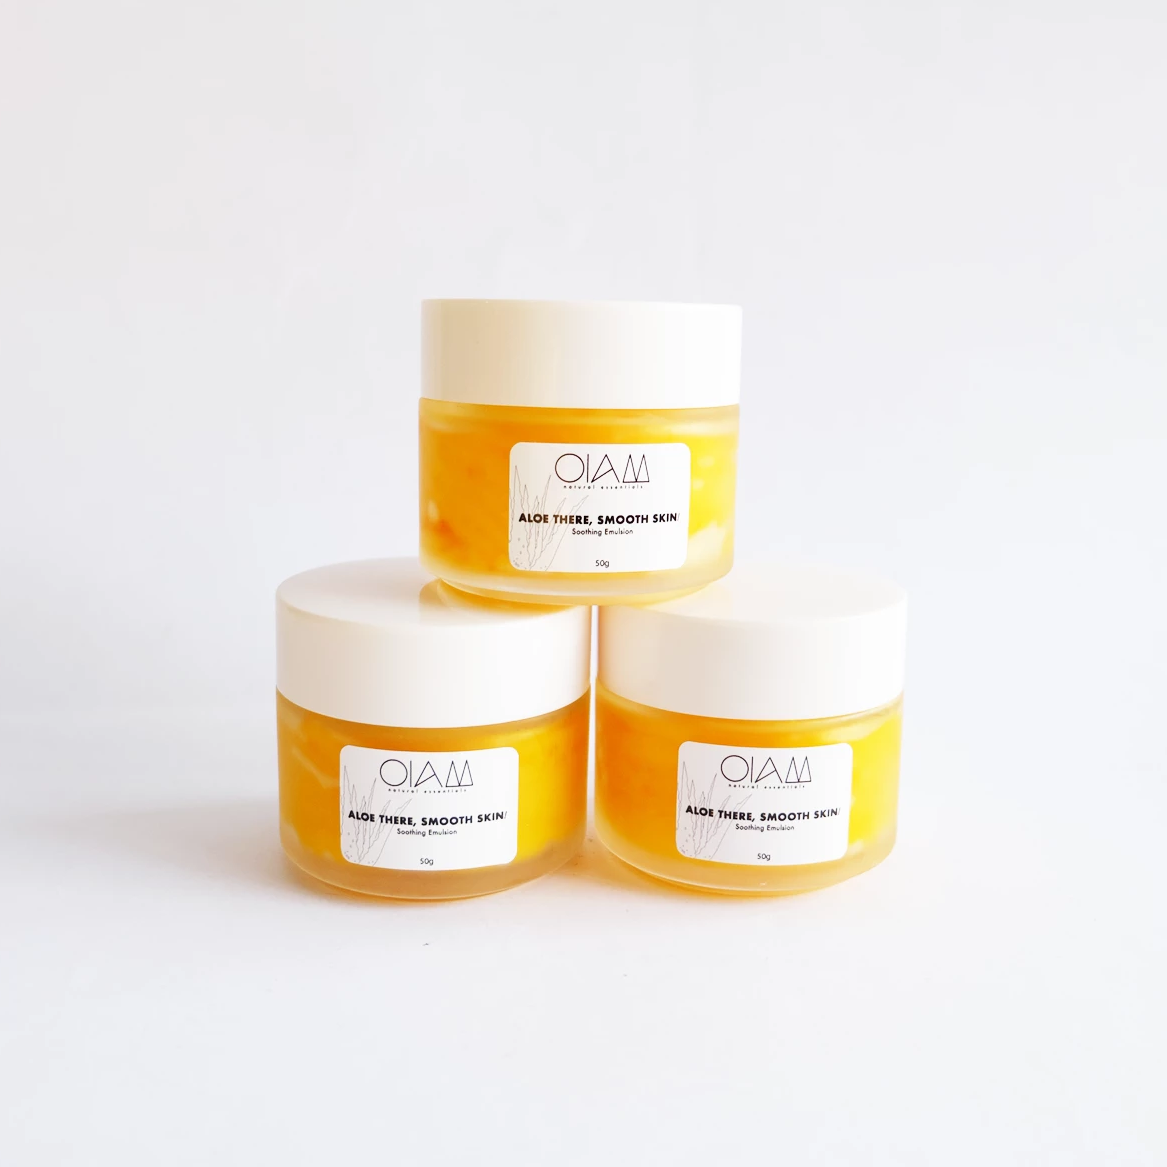 ALOE THERE, SMOOTH SKIN! Bundle [BACK IN STOCK]